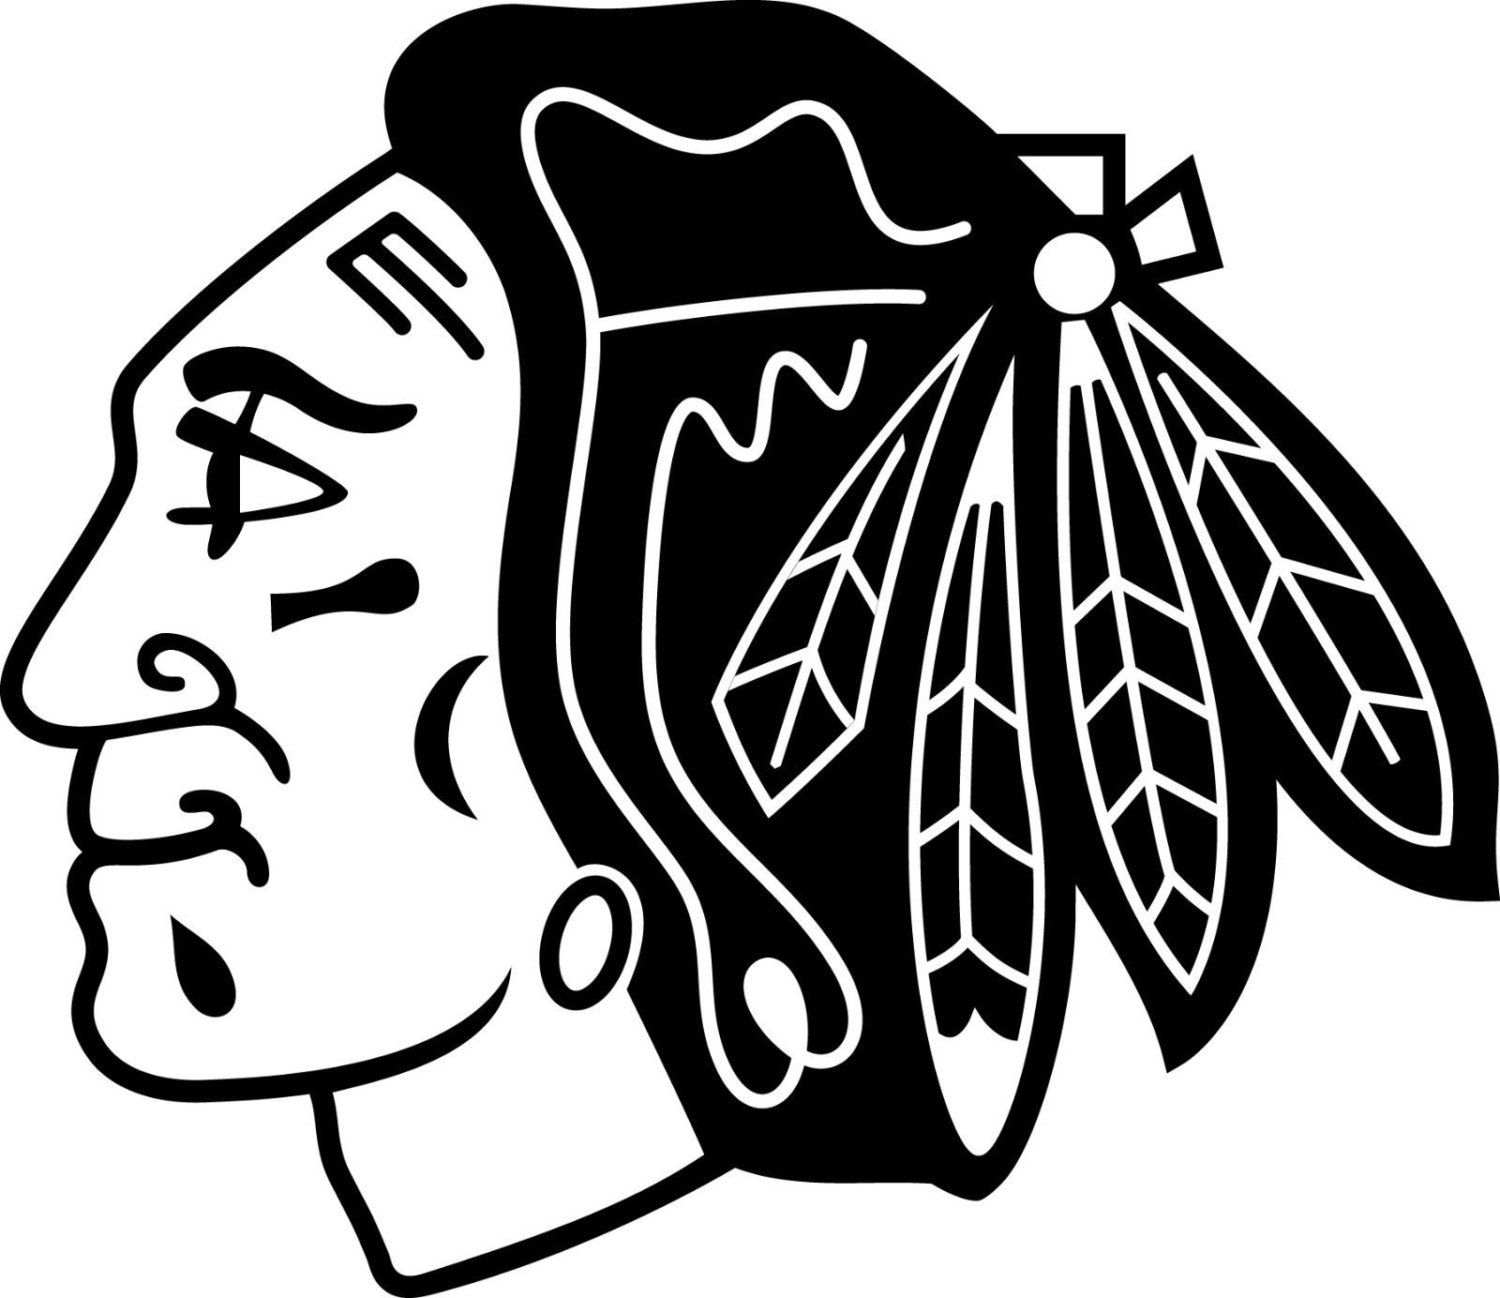 chicago blackhawks coloring pages - chicago blackhawks logowindow wall decal vinyl car sticker